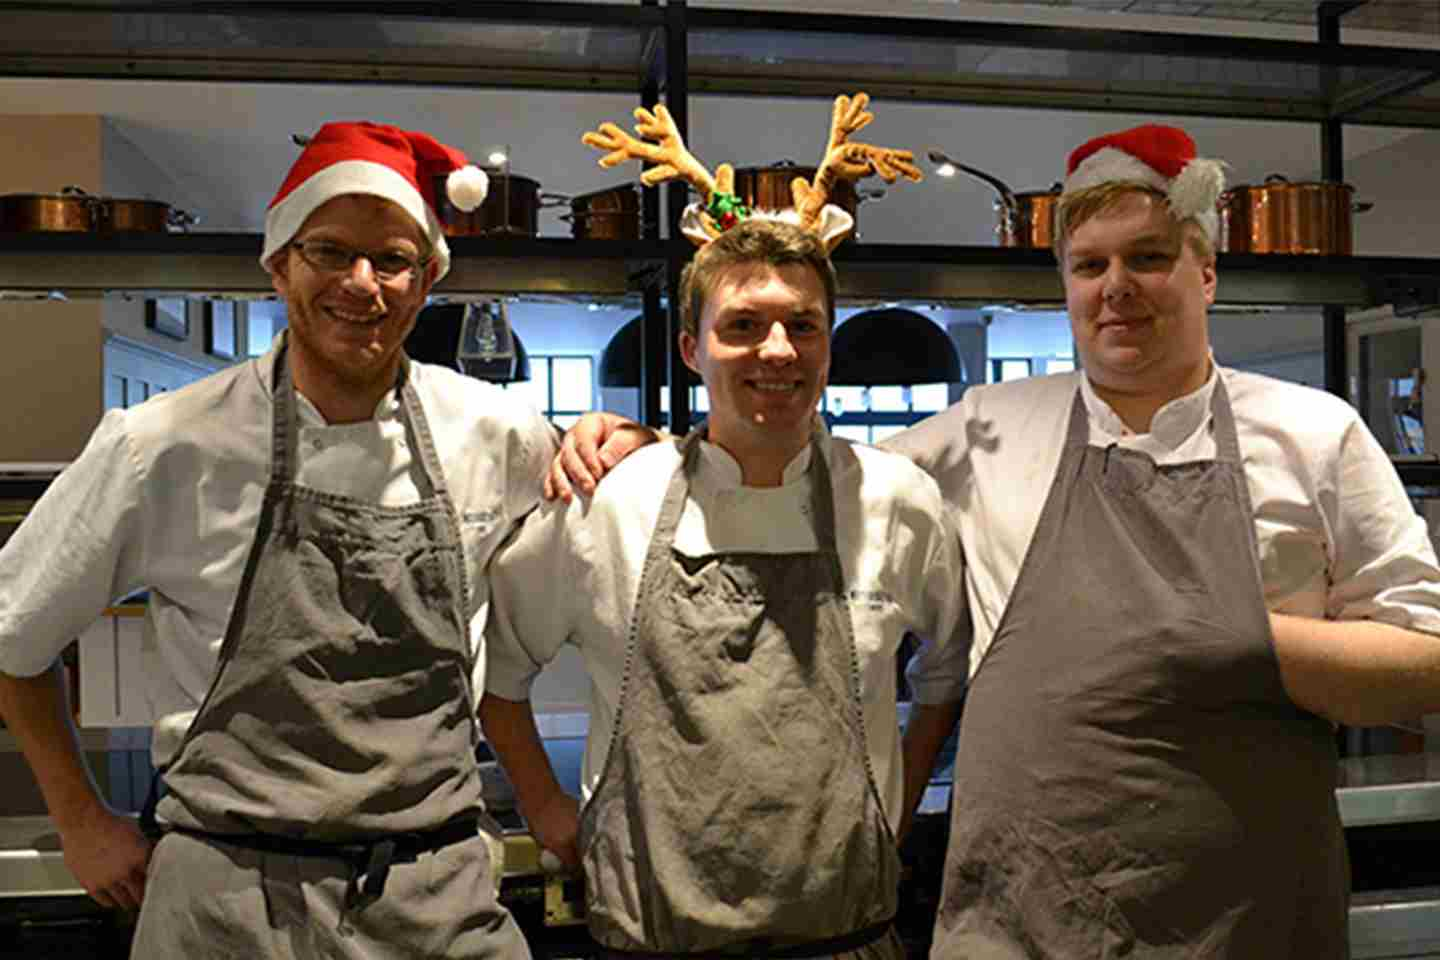 Zacry's-chefs-at-Christmas.jpg